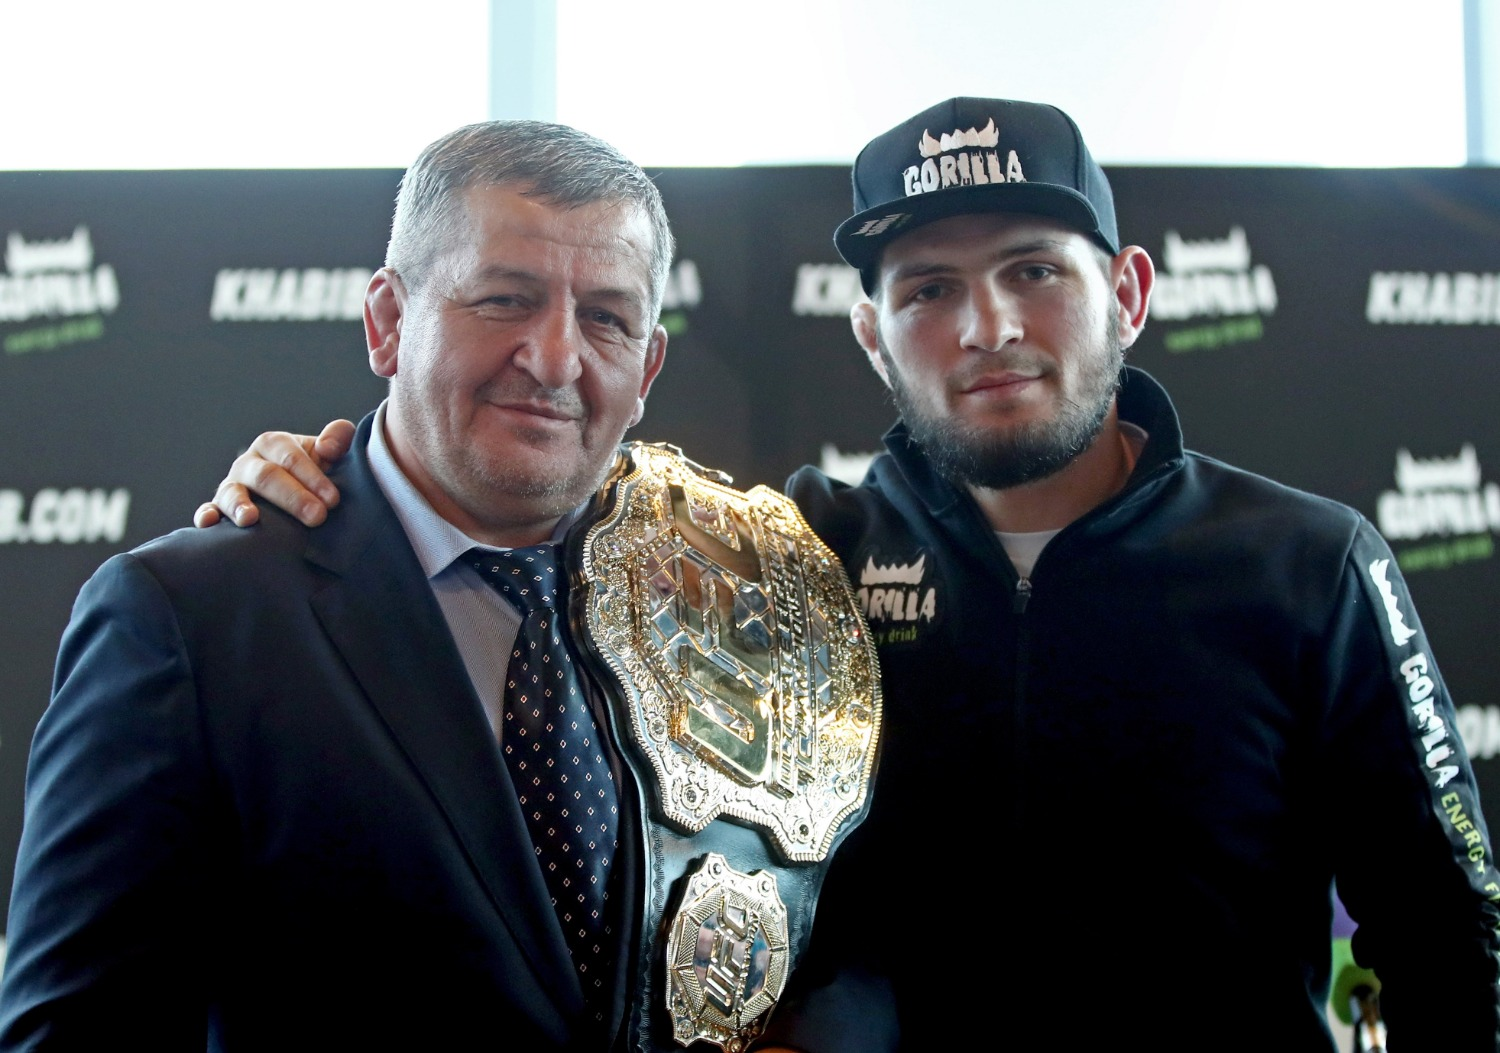 Khabib Nurmagomedov suffered a devastating loss with the tragic death of his father and trainer Abdulmanap Nurmagomedov on Friday.